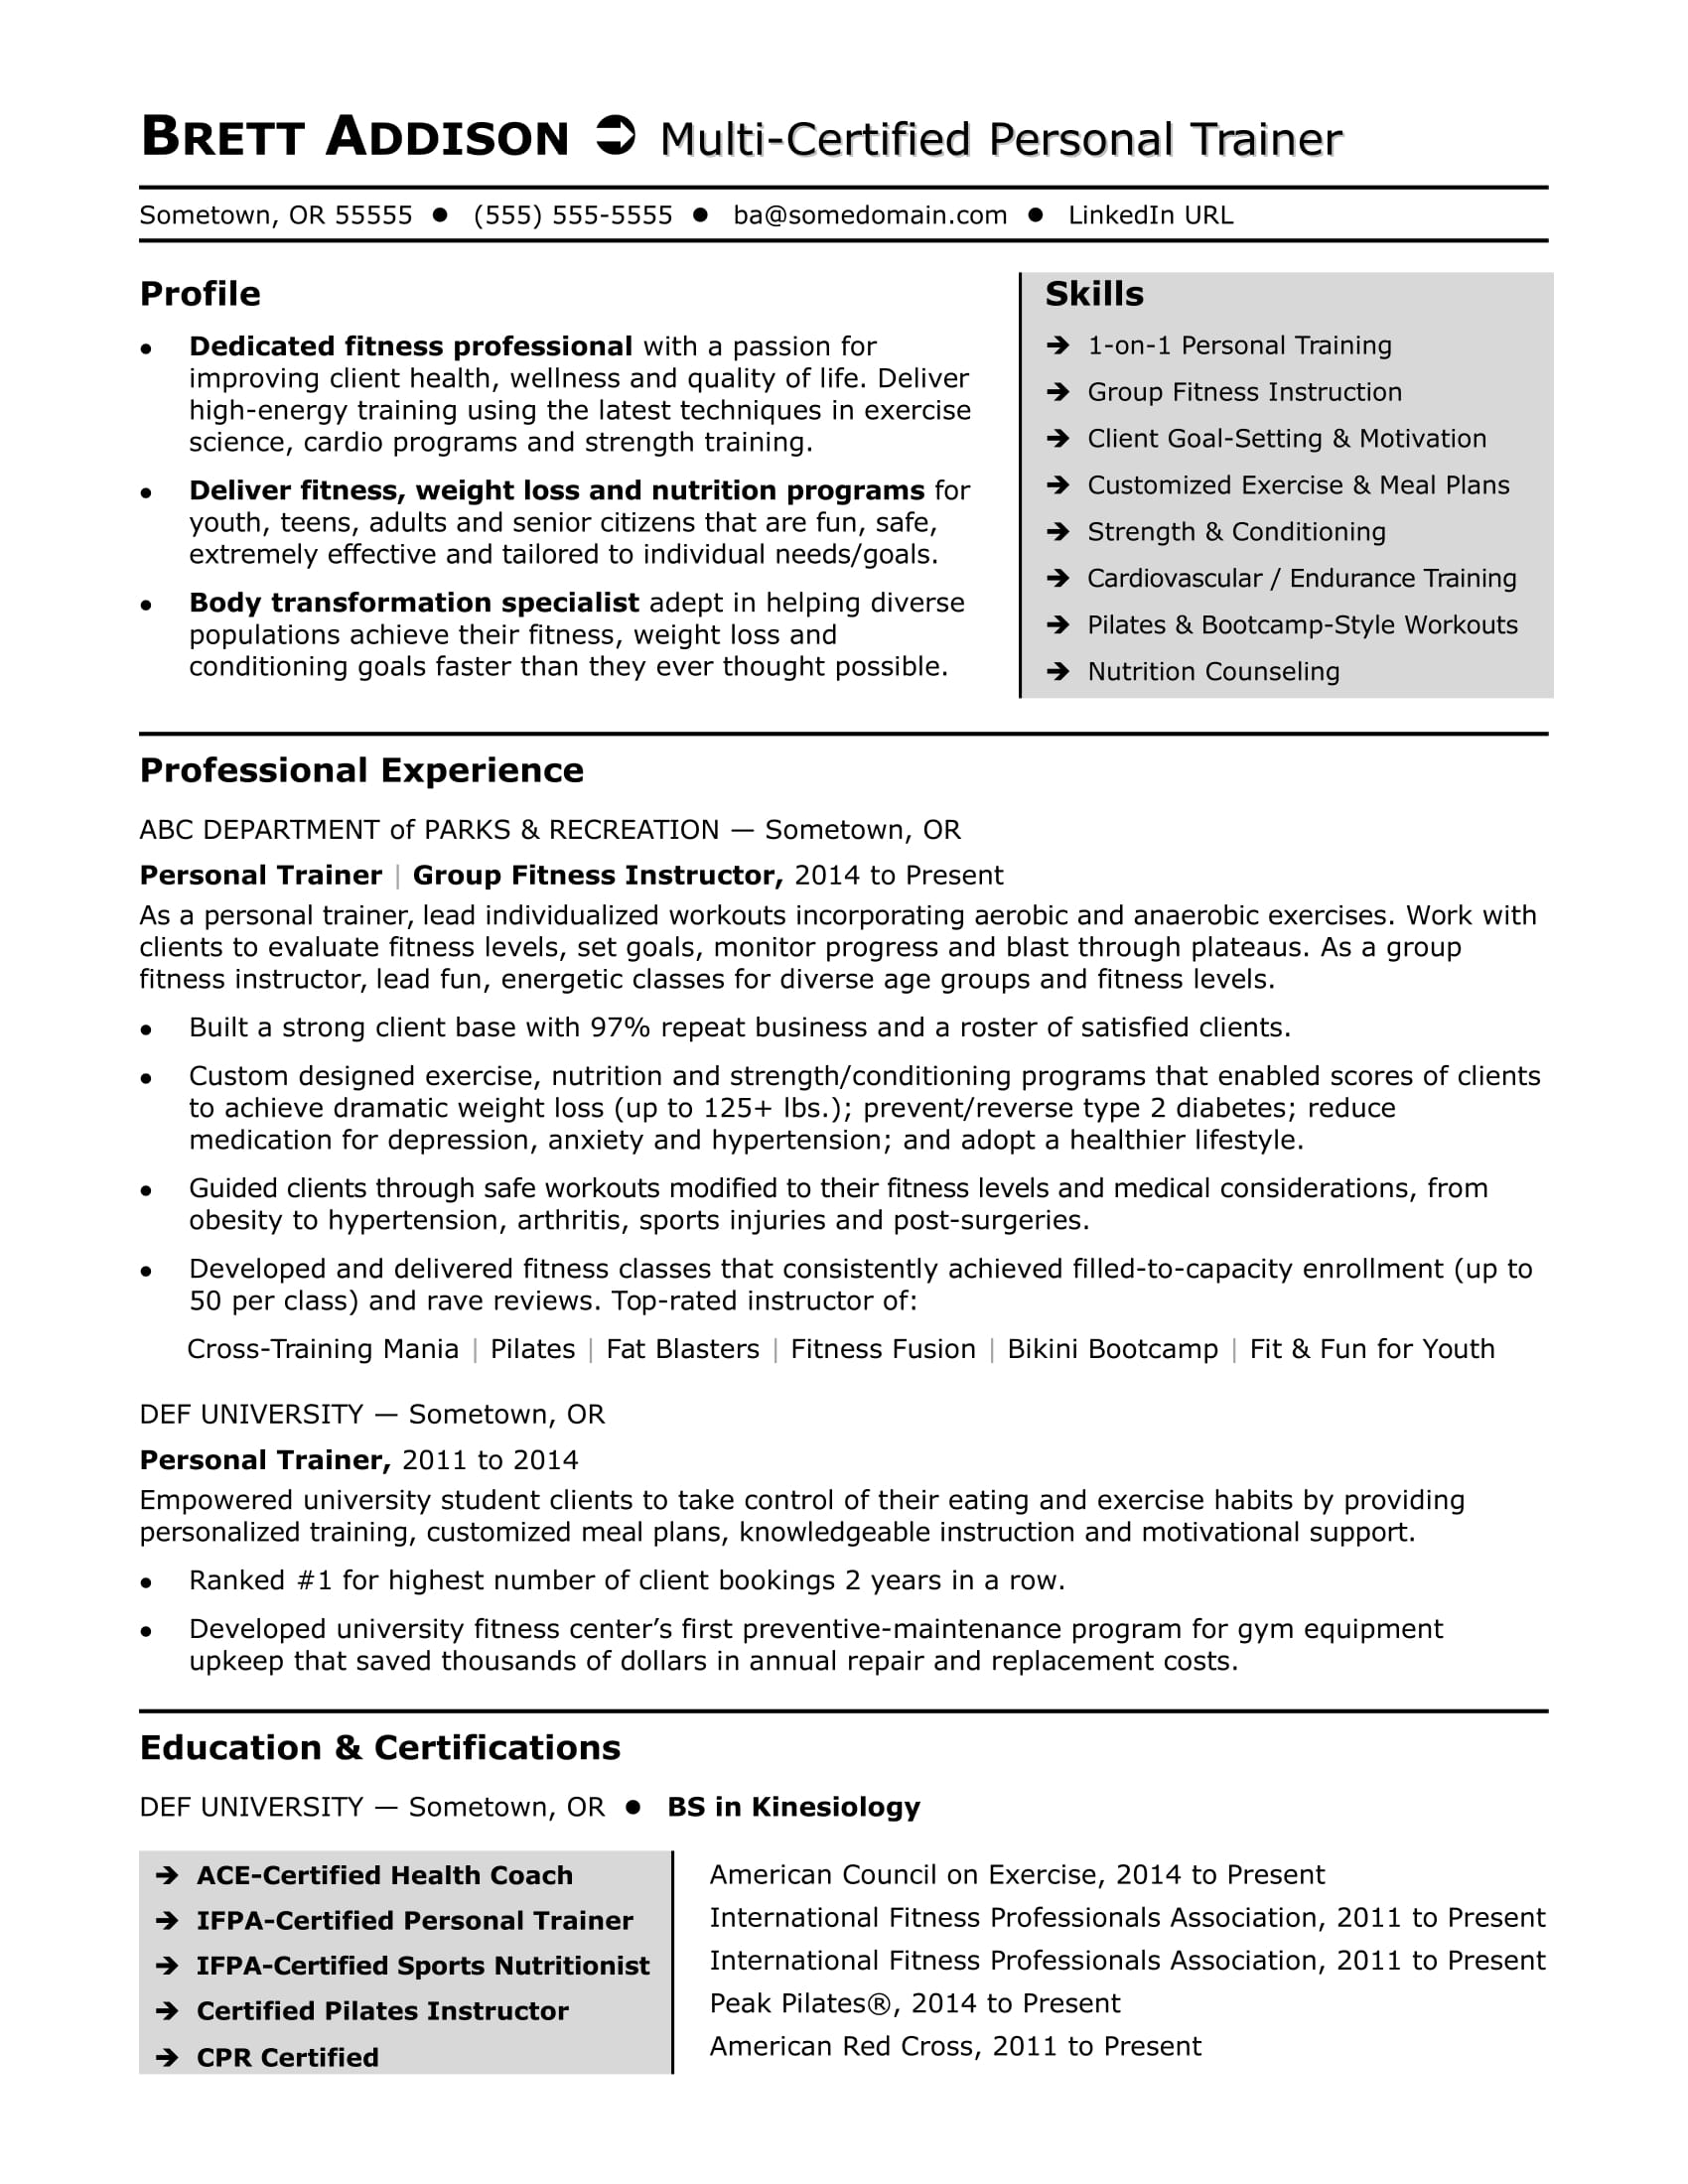 Personal trainer resume sample monster personal trainer resume sample altavistaventures Choice Image